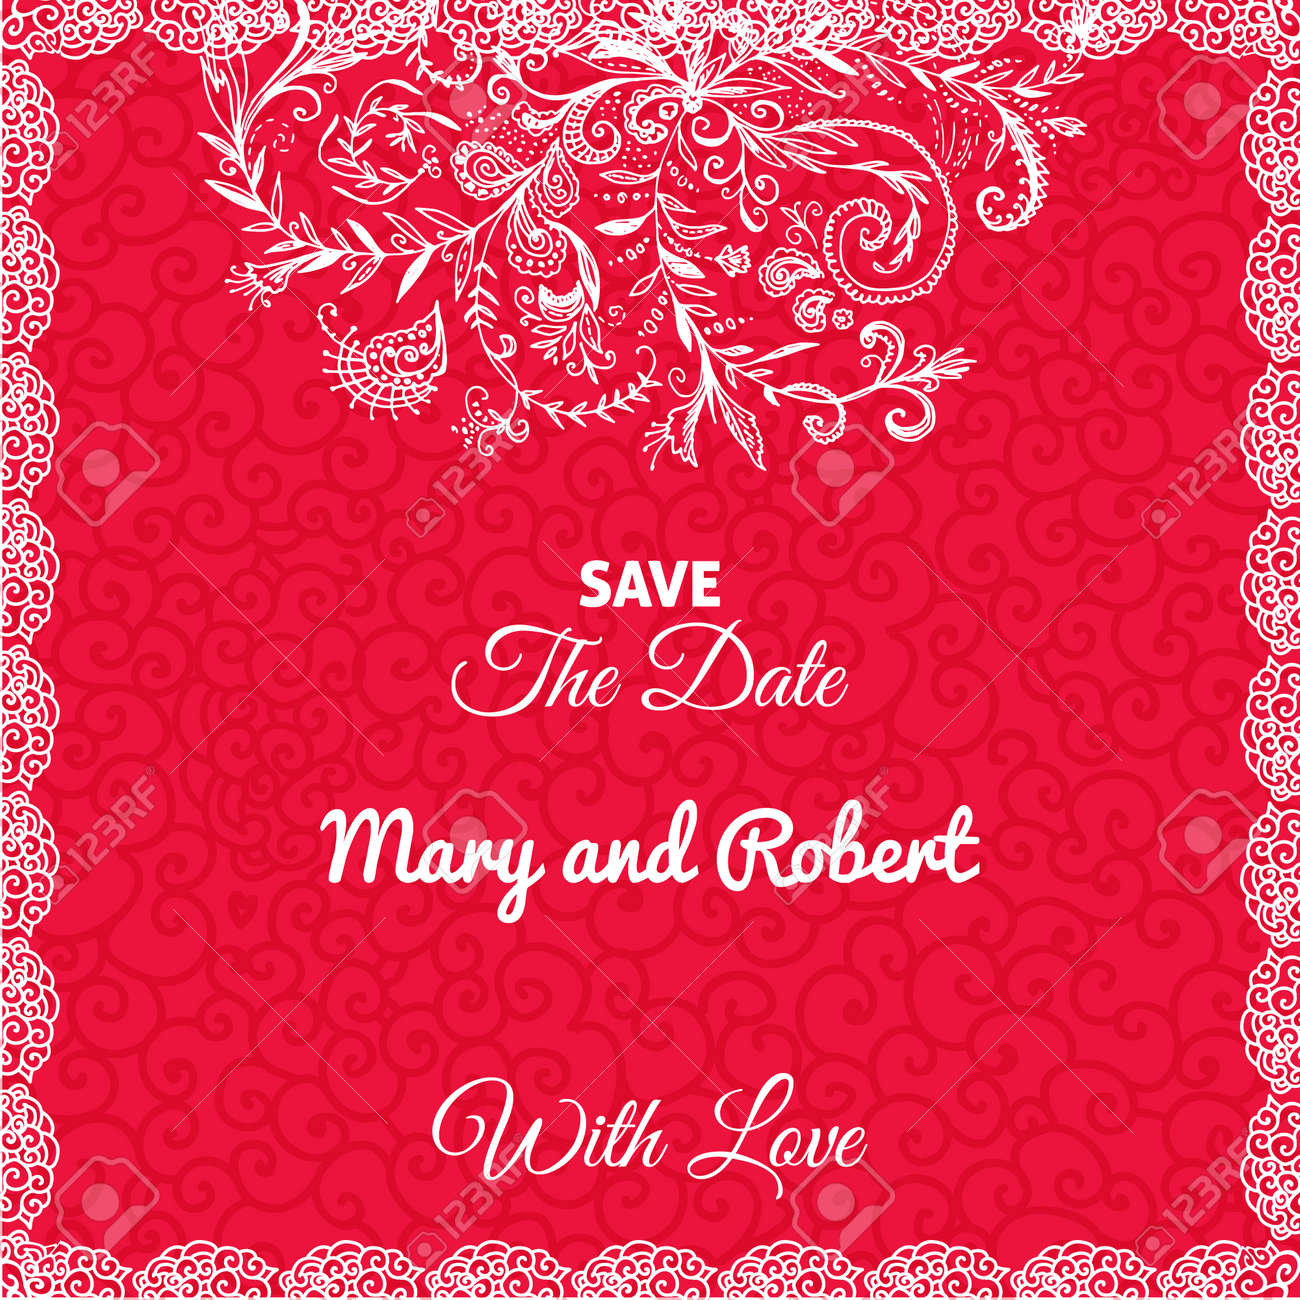 Wedding Invitation Card With Doodleornament On Geometric Red ...